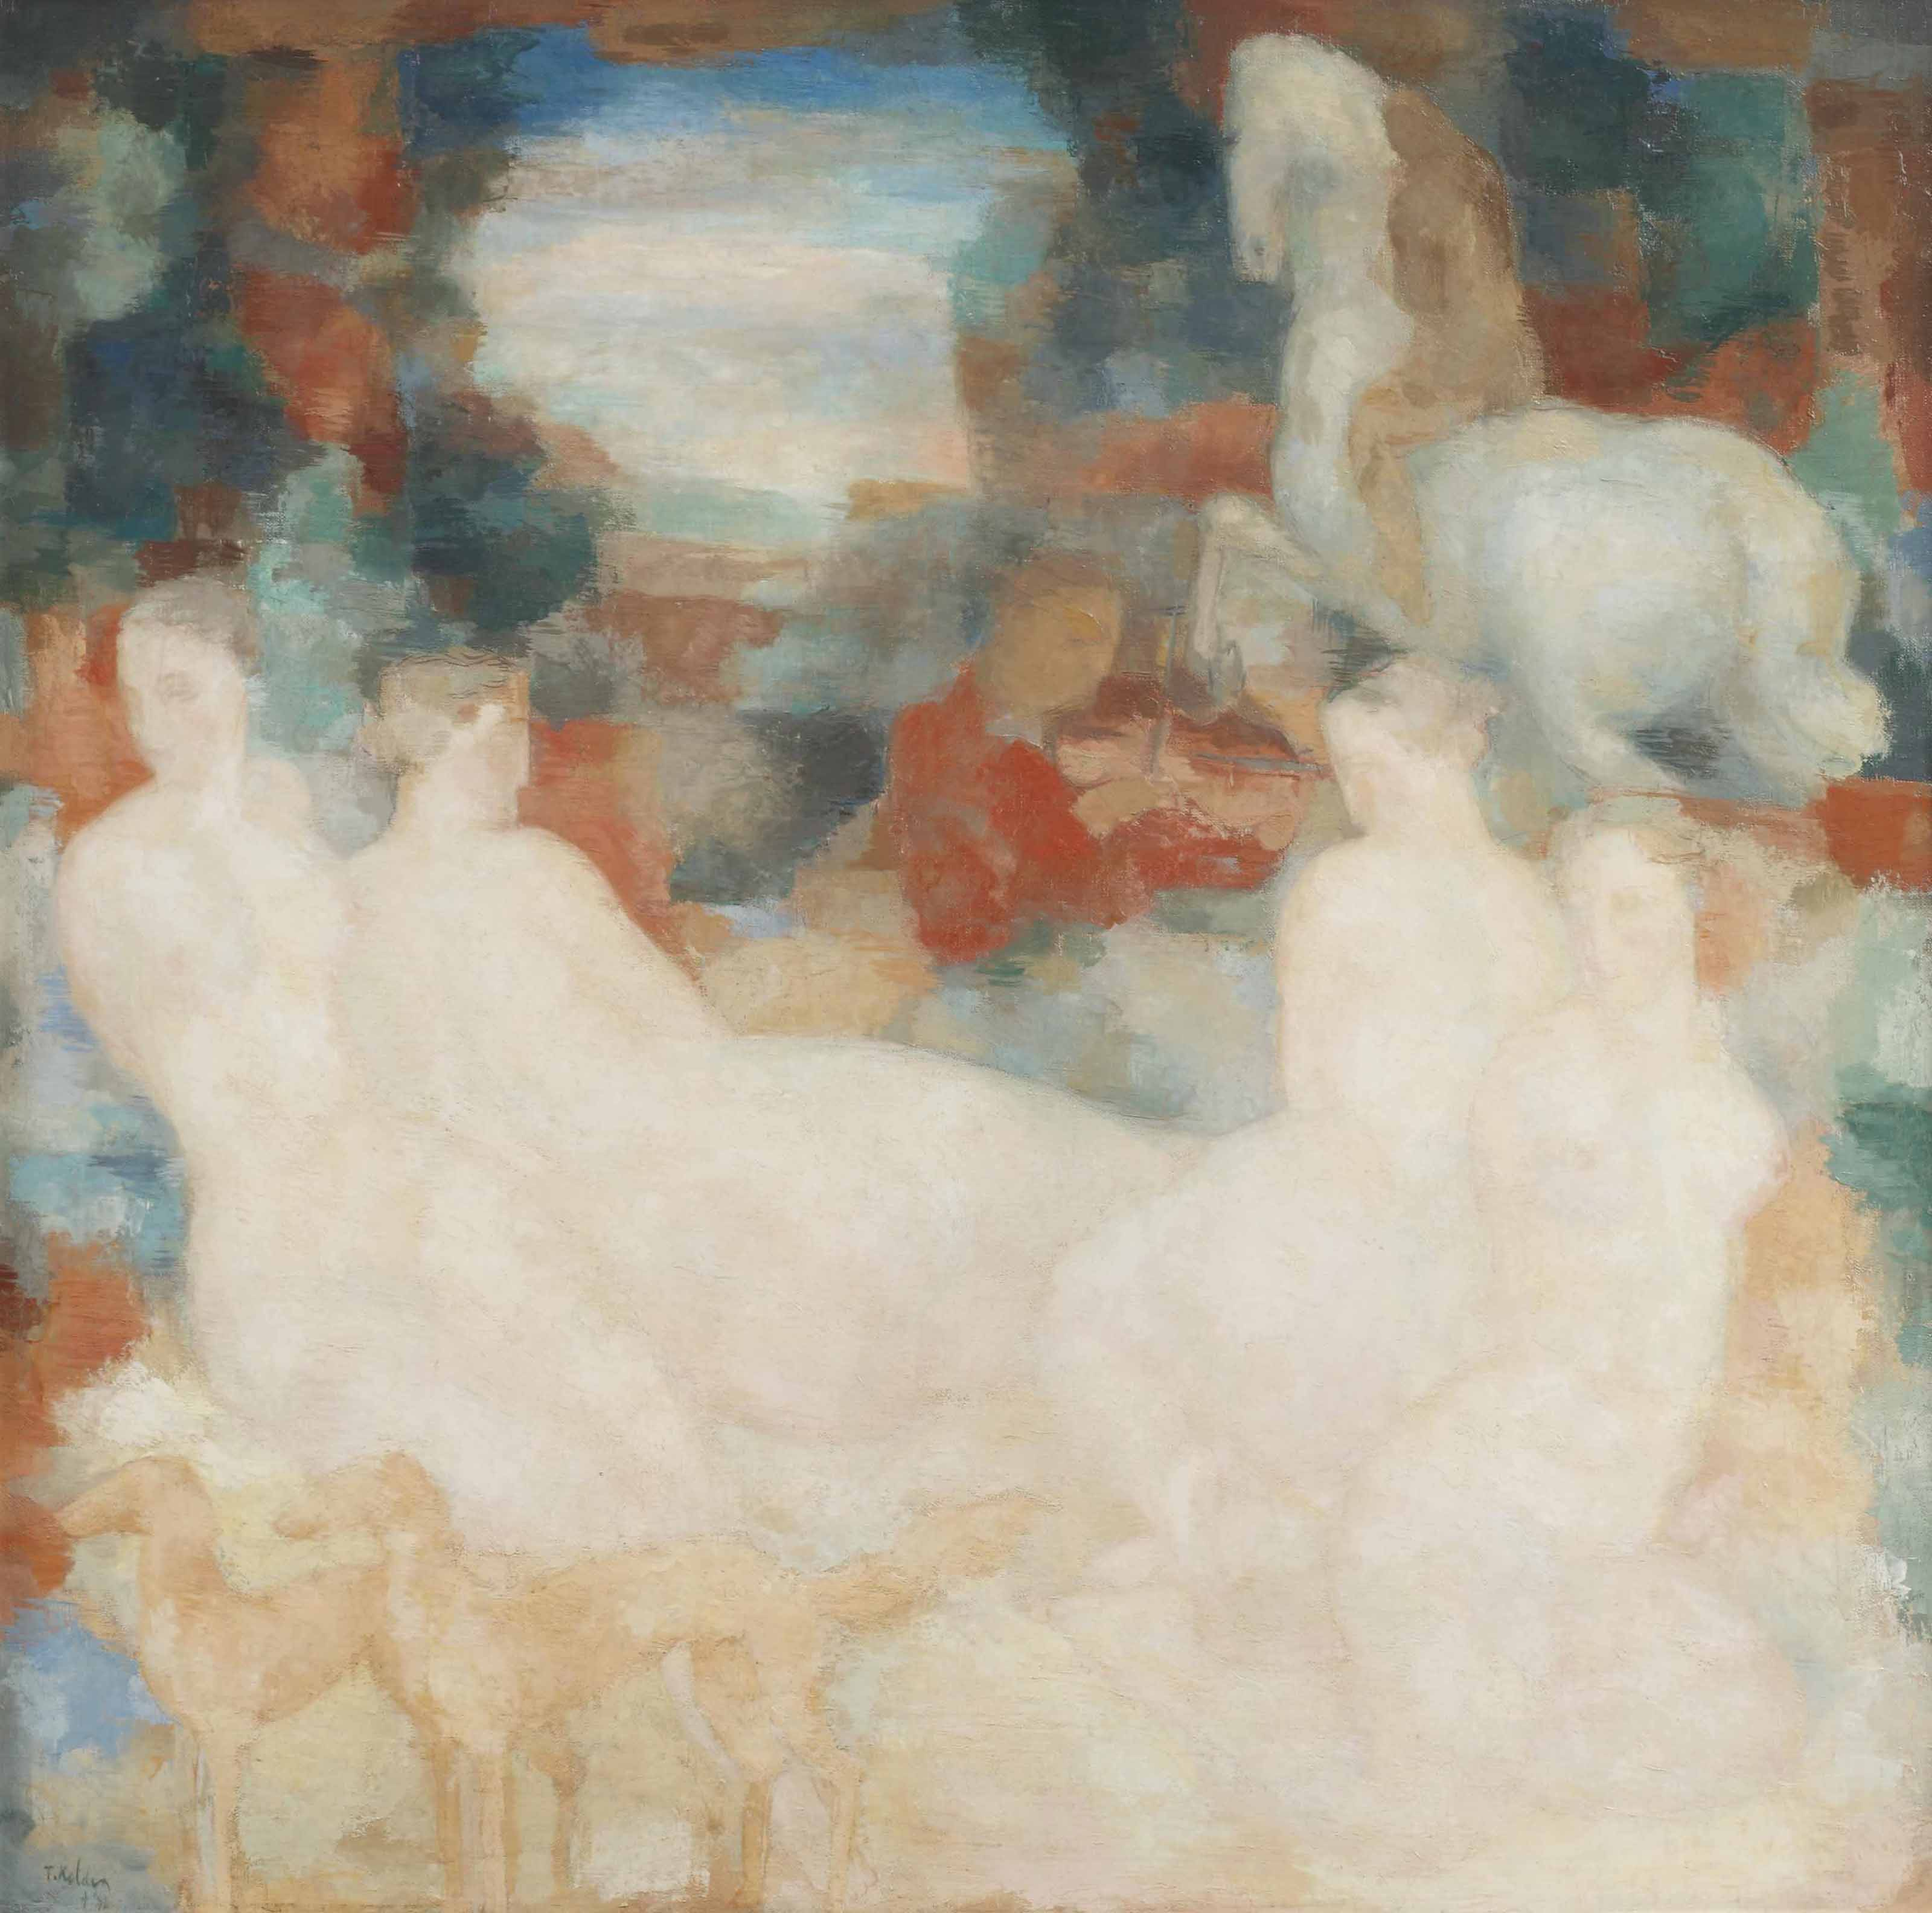 Four nudes, a violin player and horses